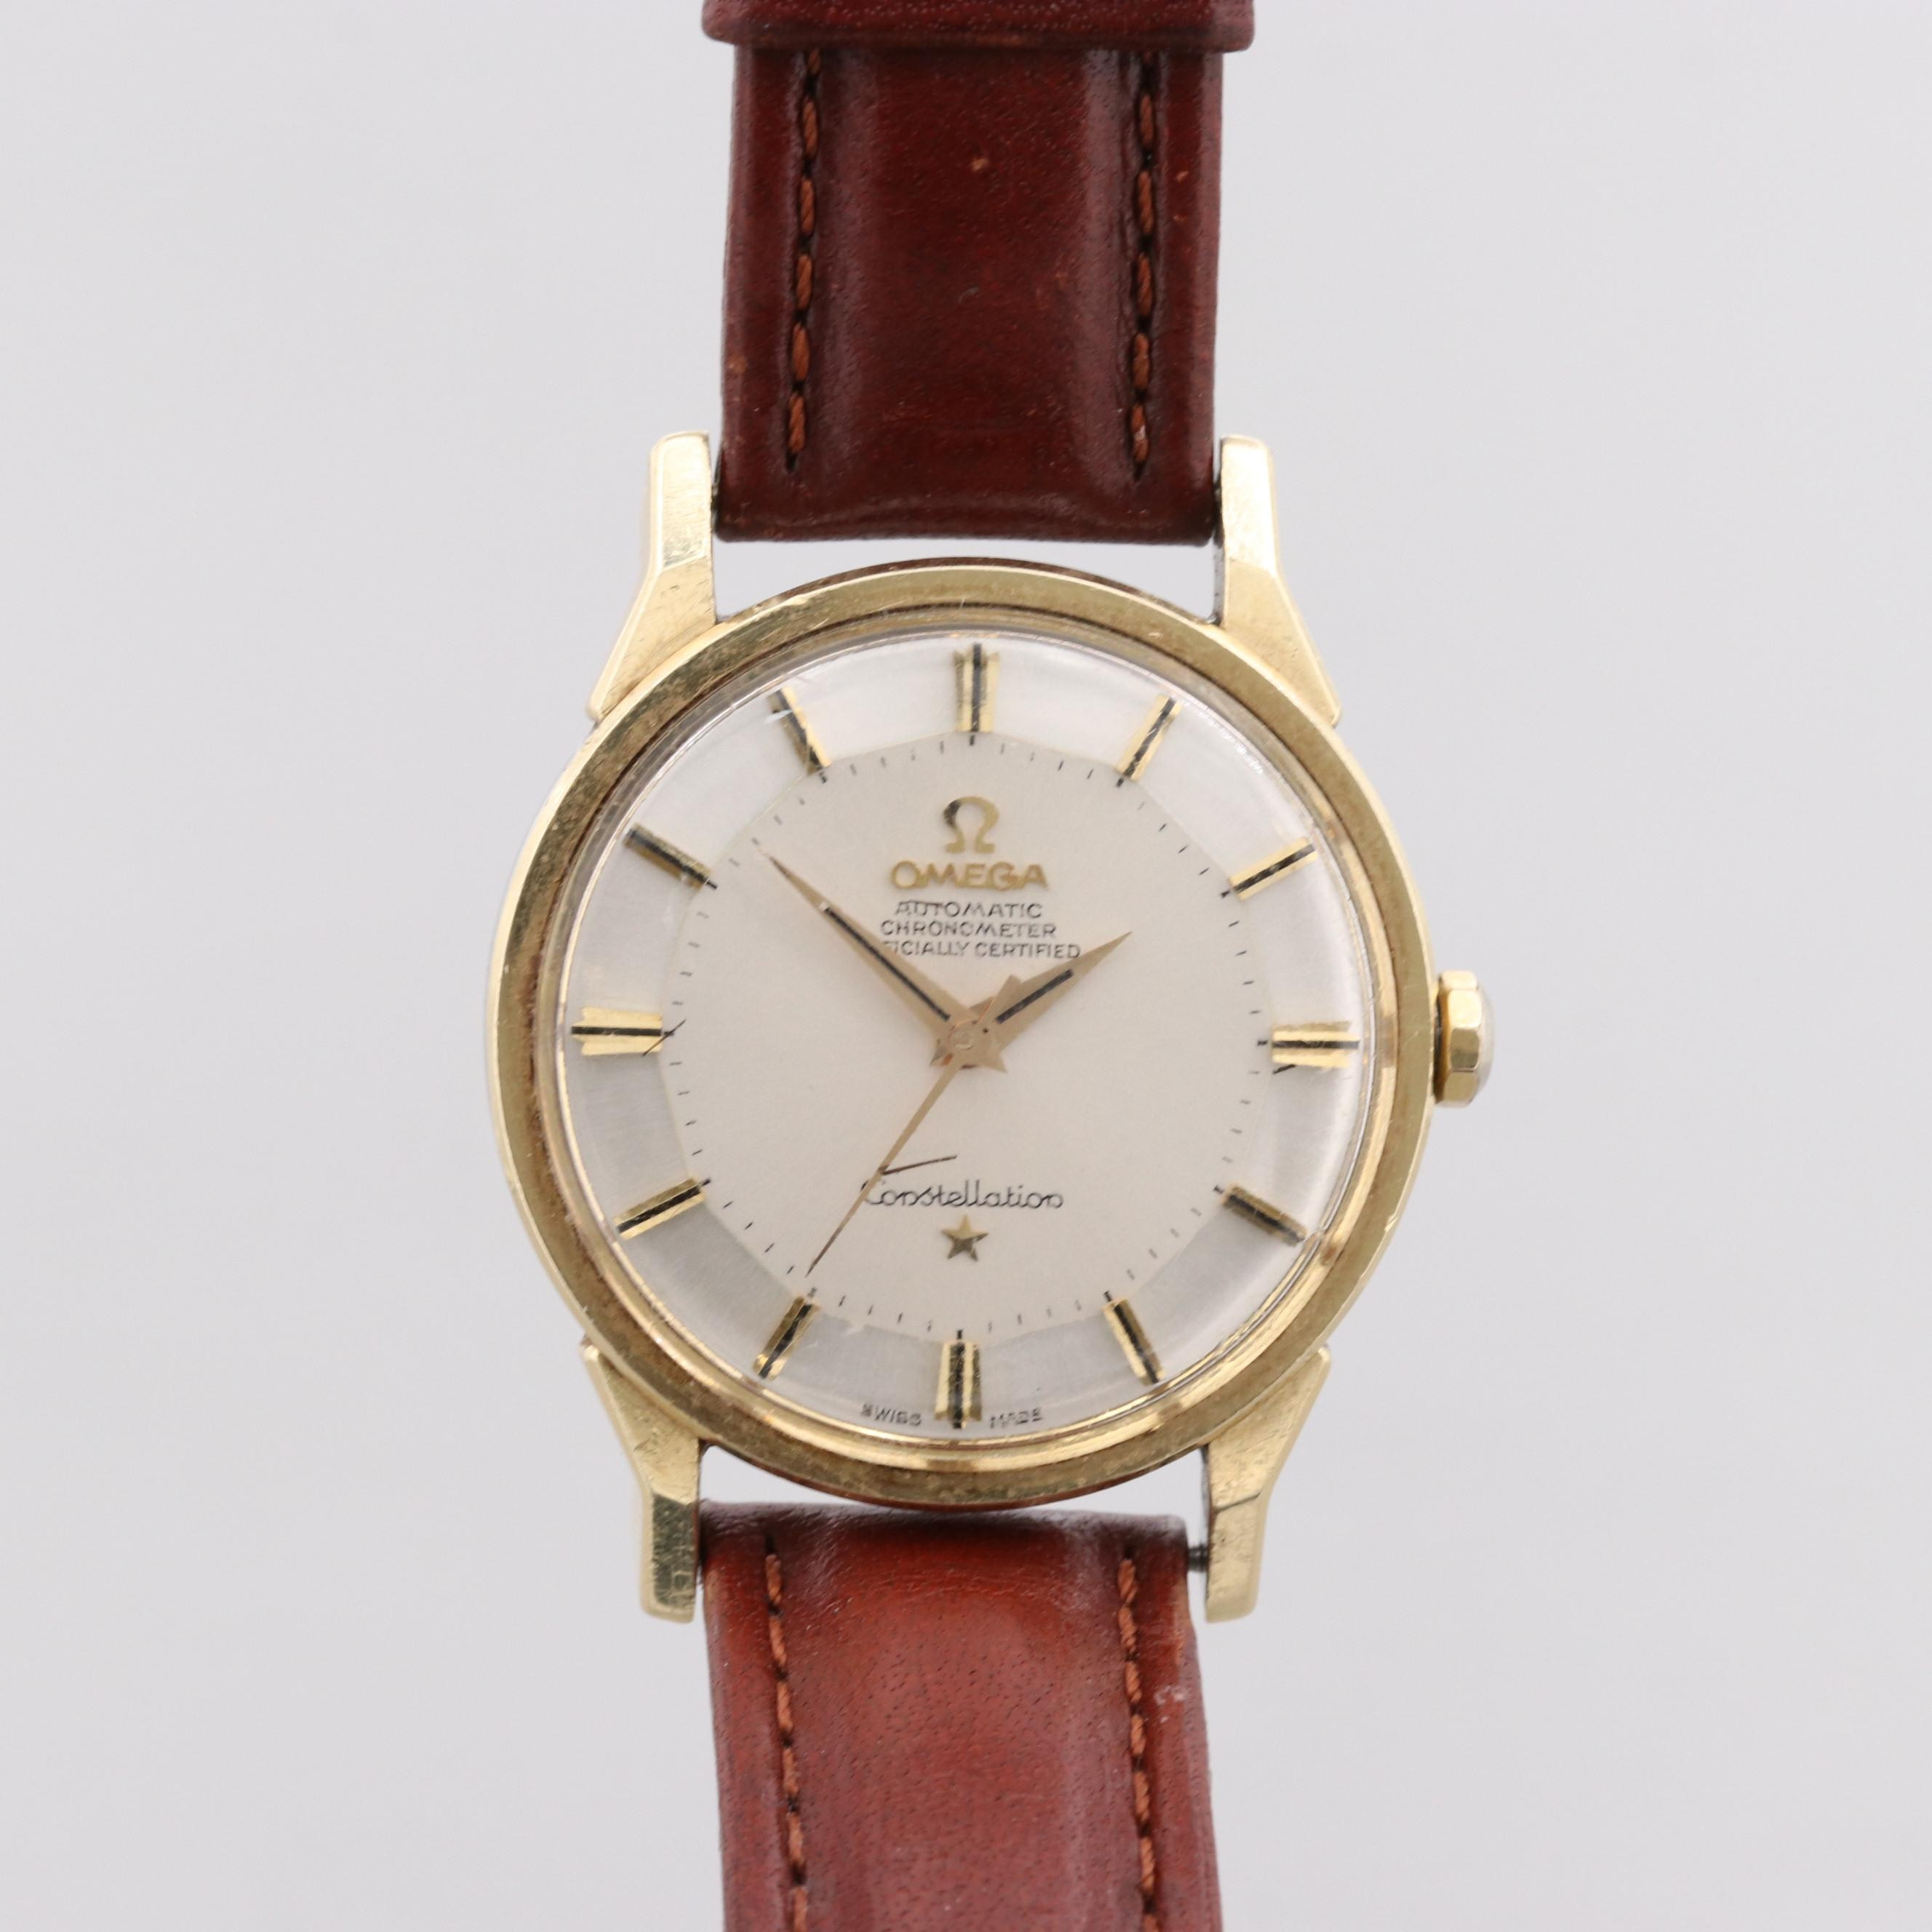 Omega Constellation Gold Capped Automatic Wristwatch With Engraved Case Back